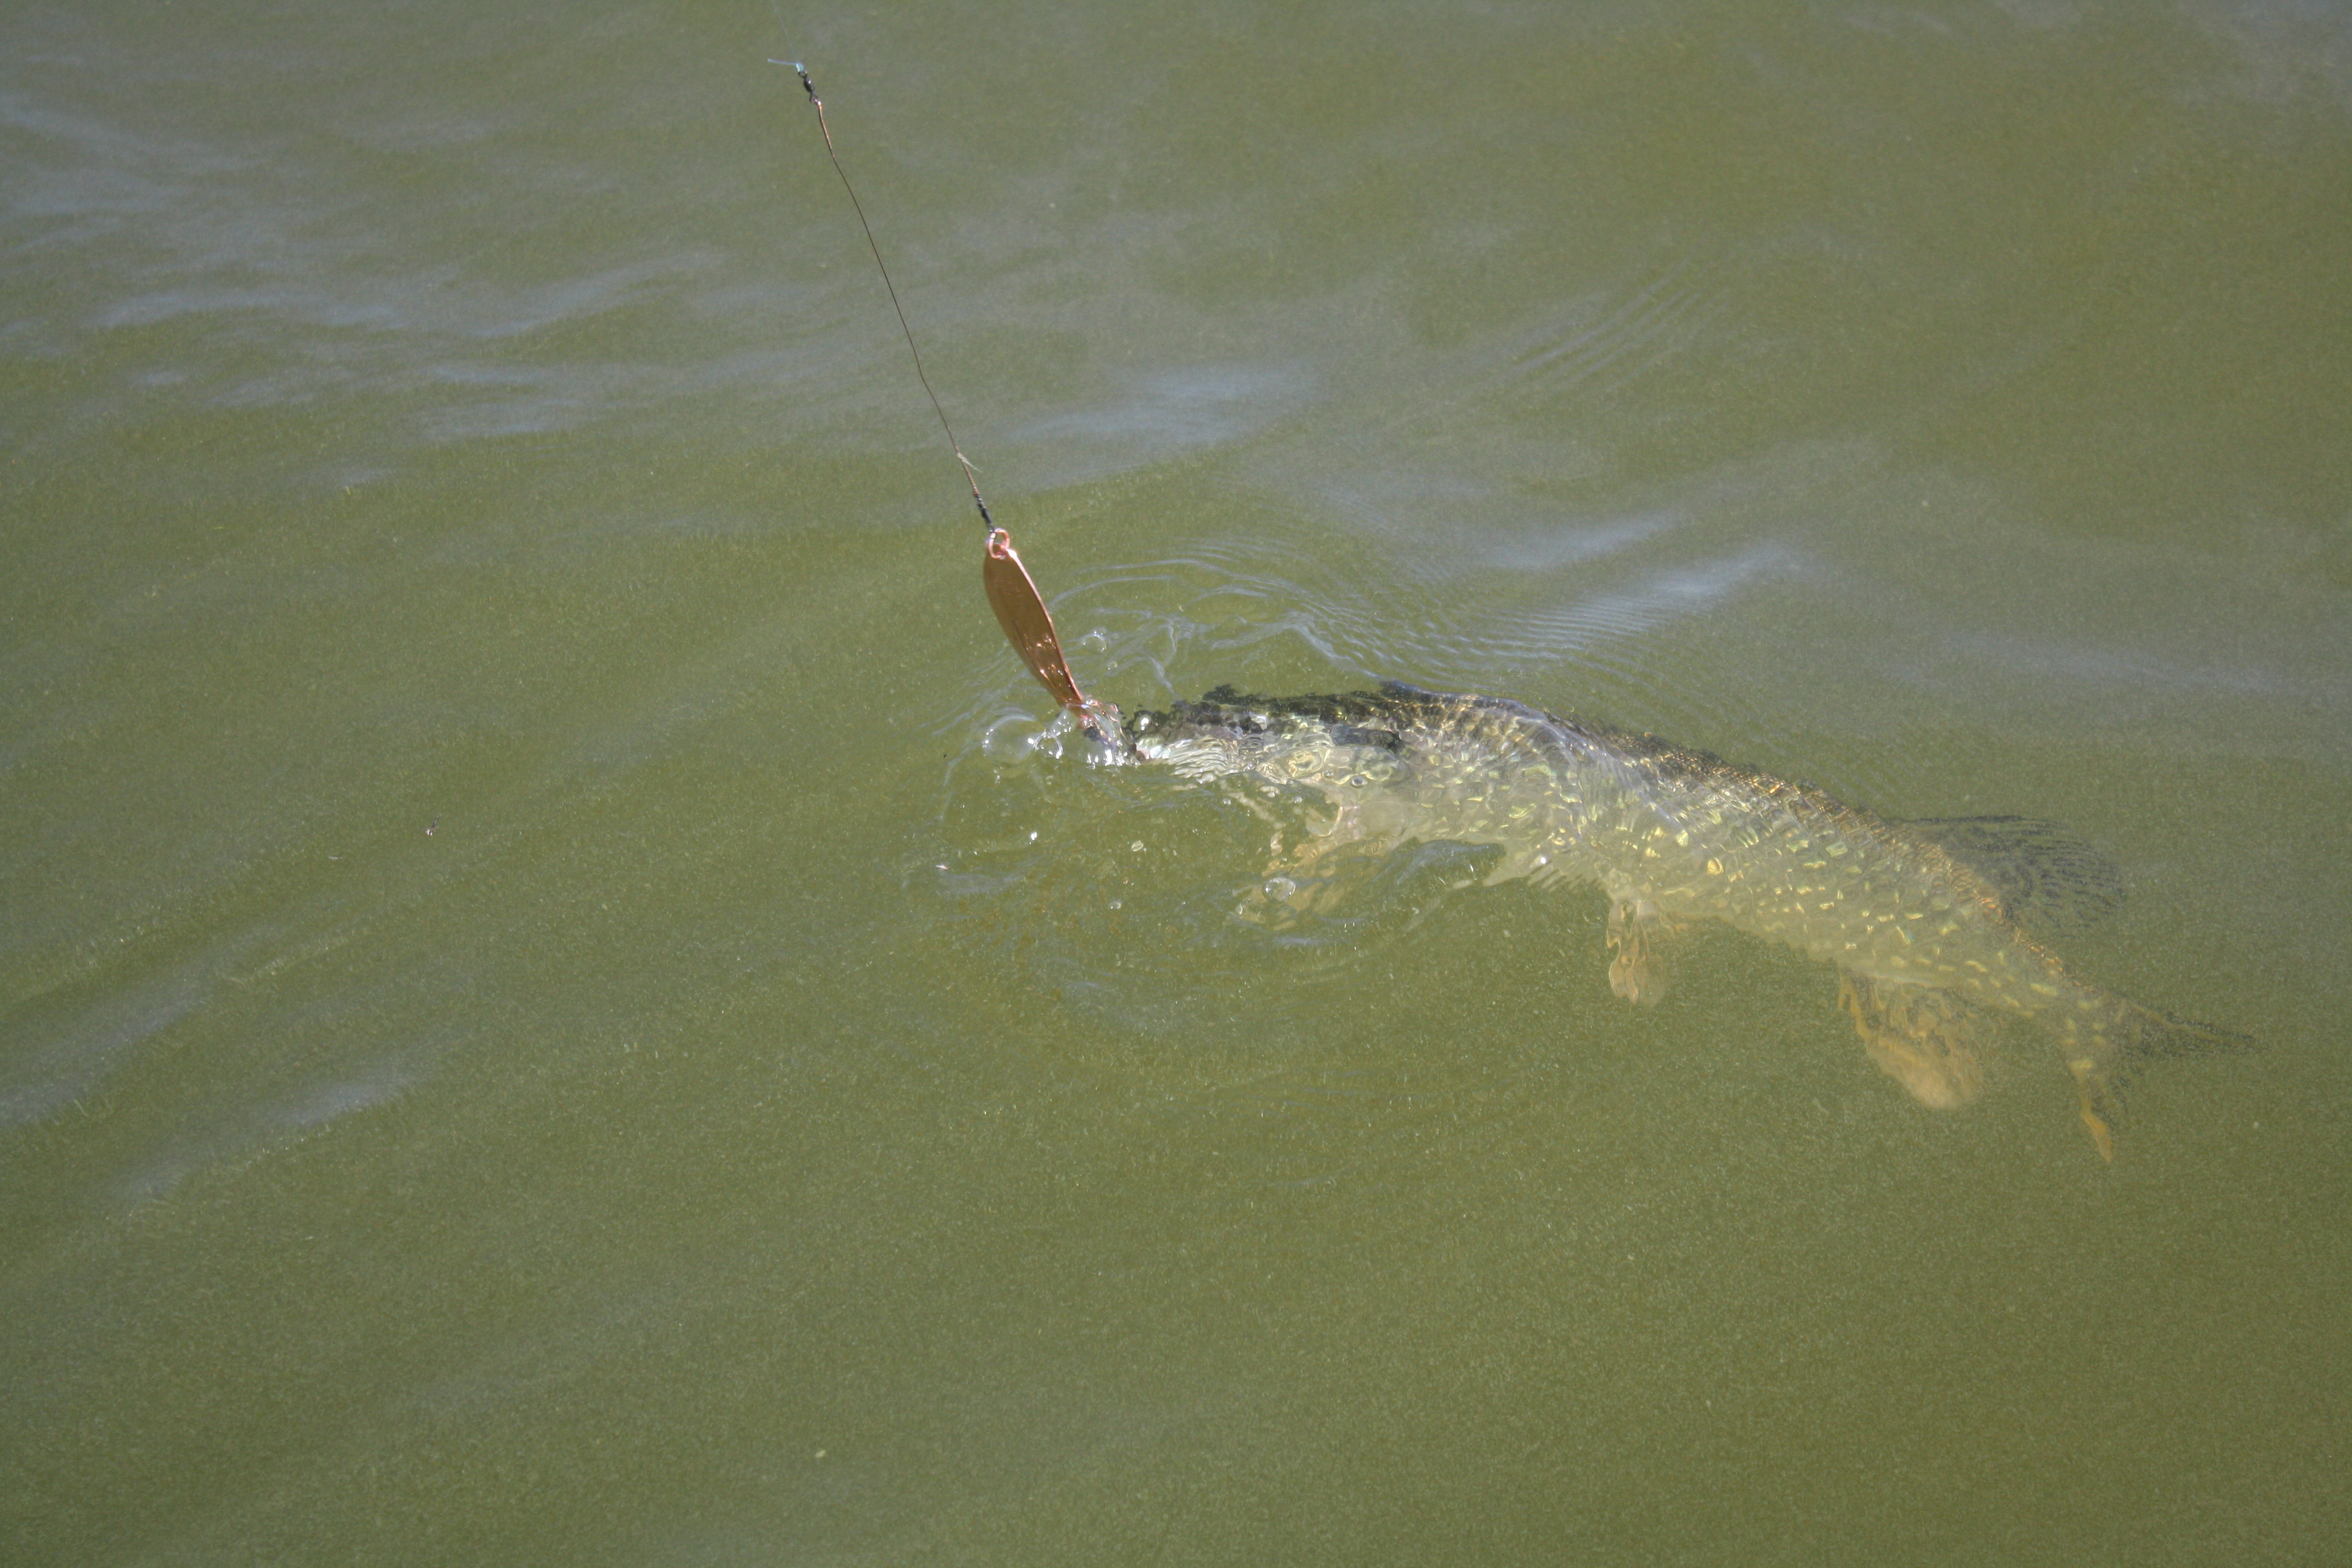 Water temperatures play a key role in the Connecticut River backwaters during springtime. If it's too cold the pike are sluggish, too warm and the pike go on the move. Ideally, pike fishermen look for 50 degree water with a light southwest breeze rippling the surface.